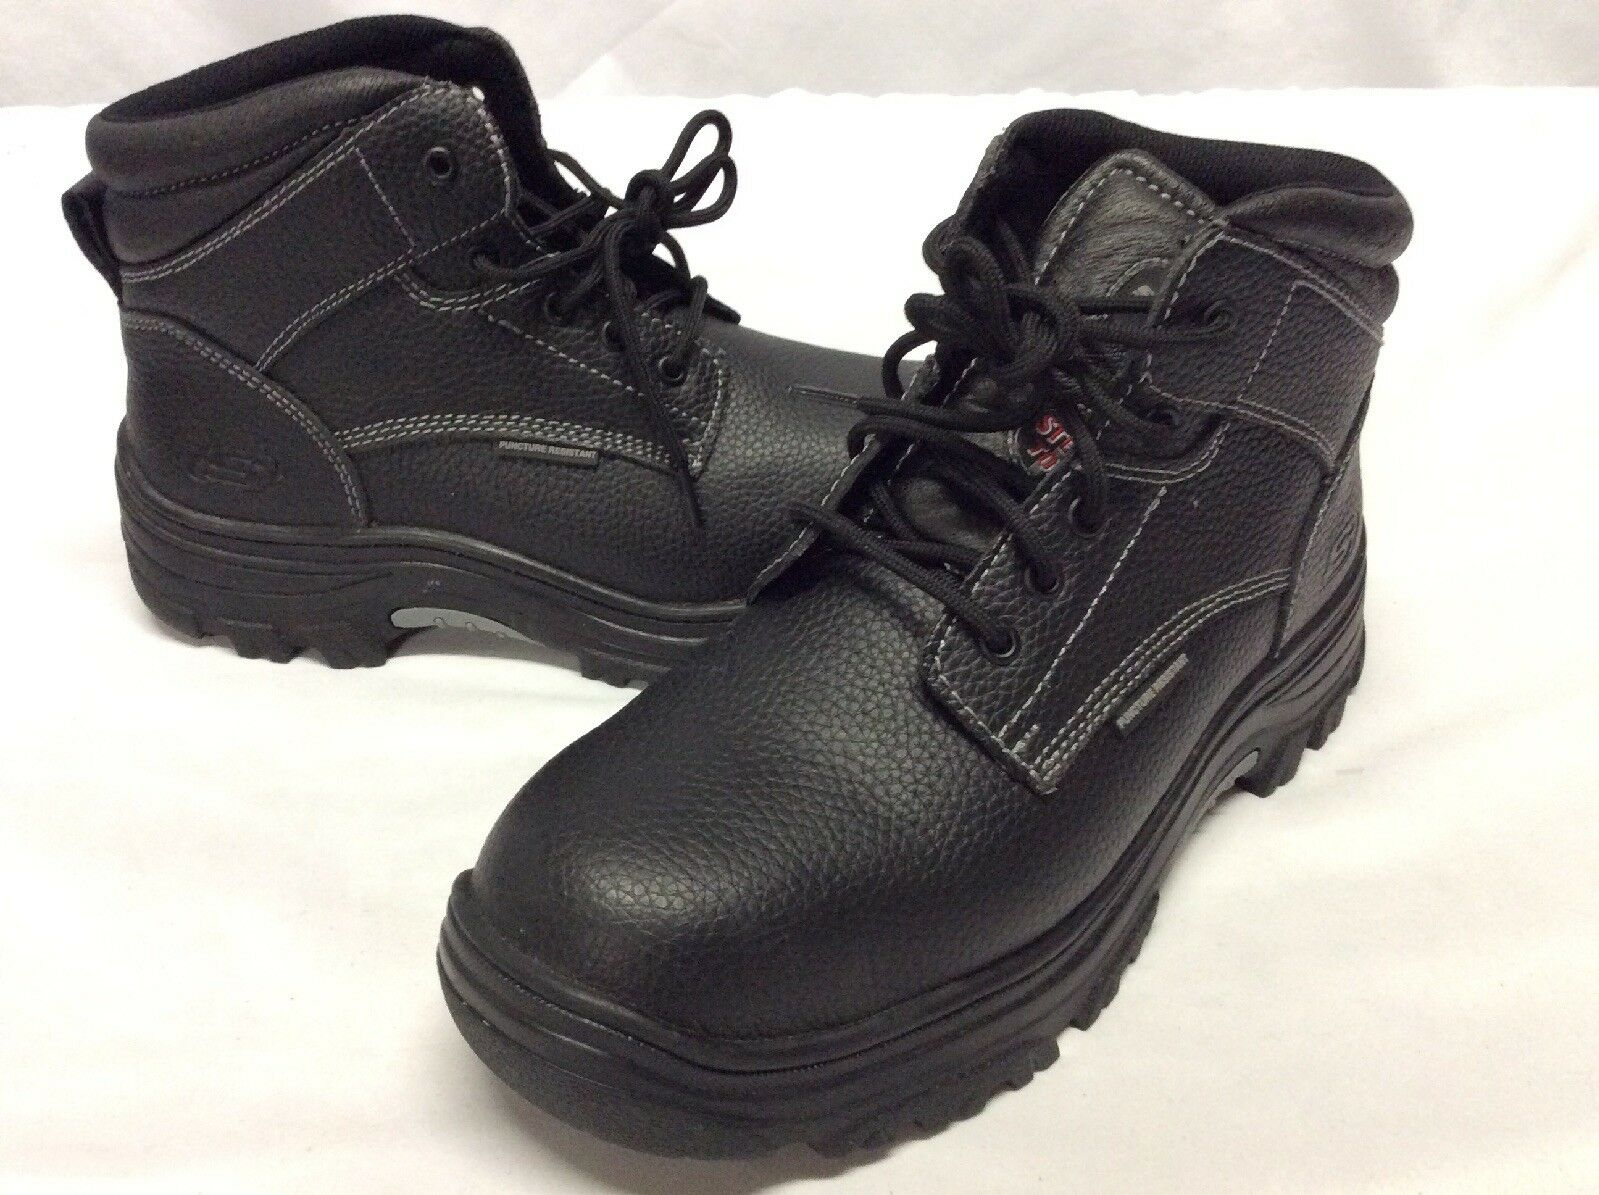 Skechers Work Men's Boots,STEEL TOE Black Leather, Size US 7 M, Eur 39.5 ...FM12